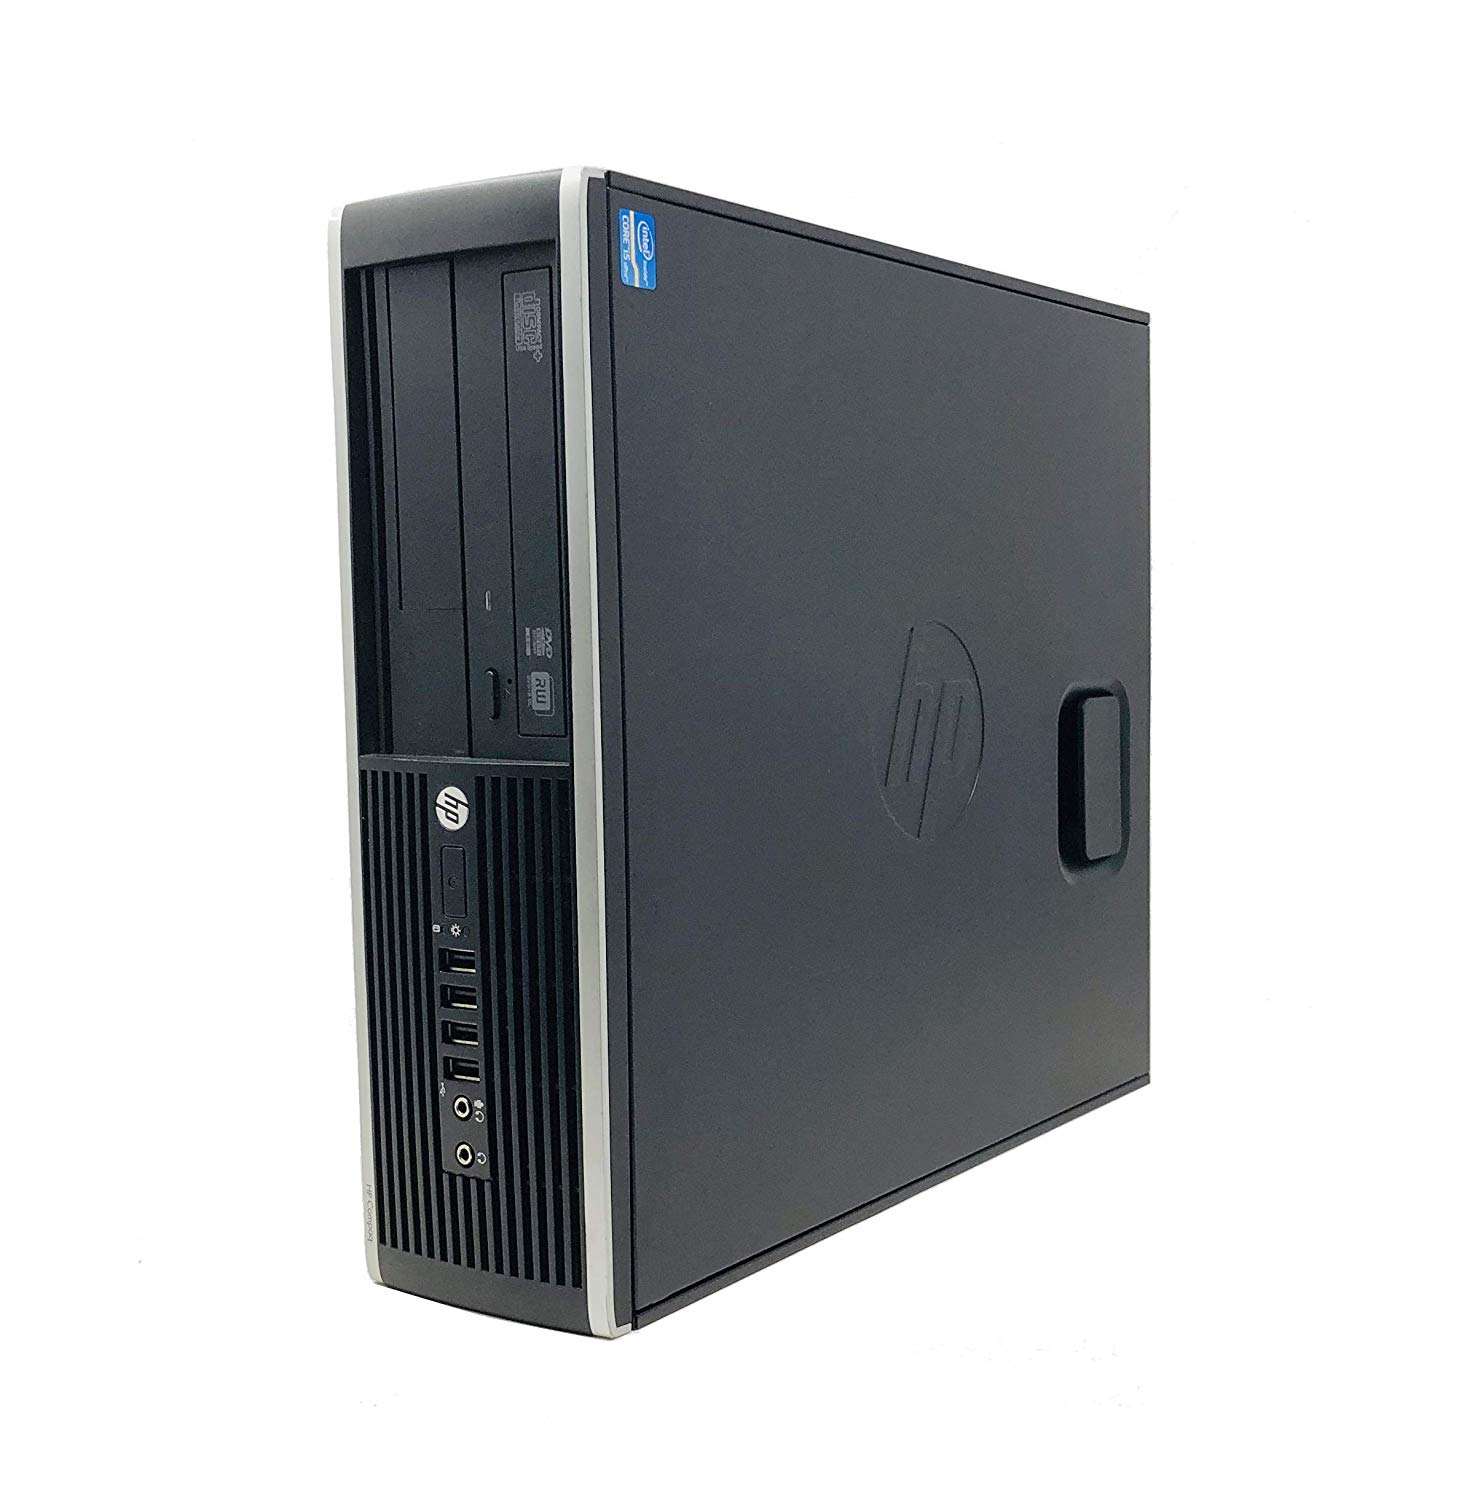 HP 8200 - Ordenador De Sobremesa (i5-2400, 8GB  RAM, HDD 250GB,  DVD, Windows 10 HOME) - Negro (Reacondicionado)